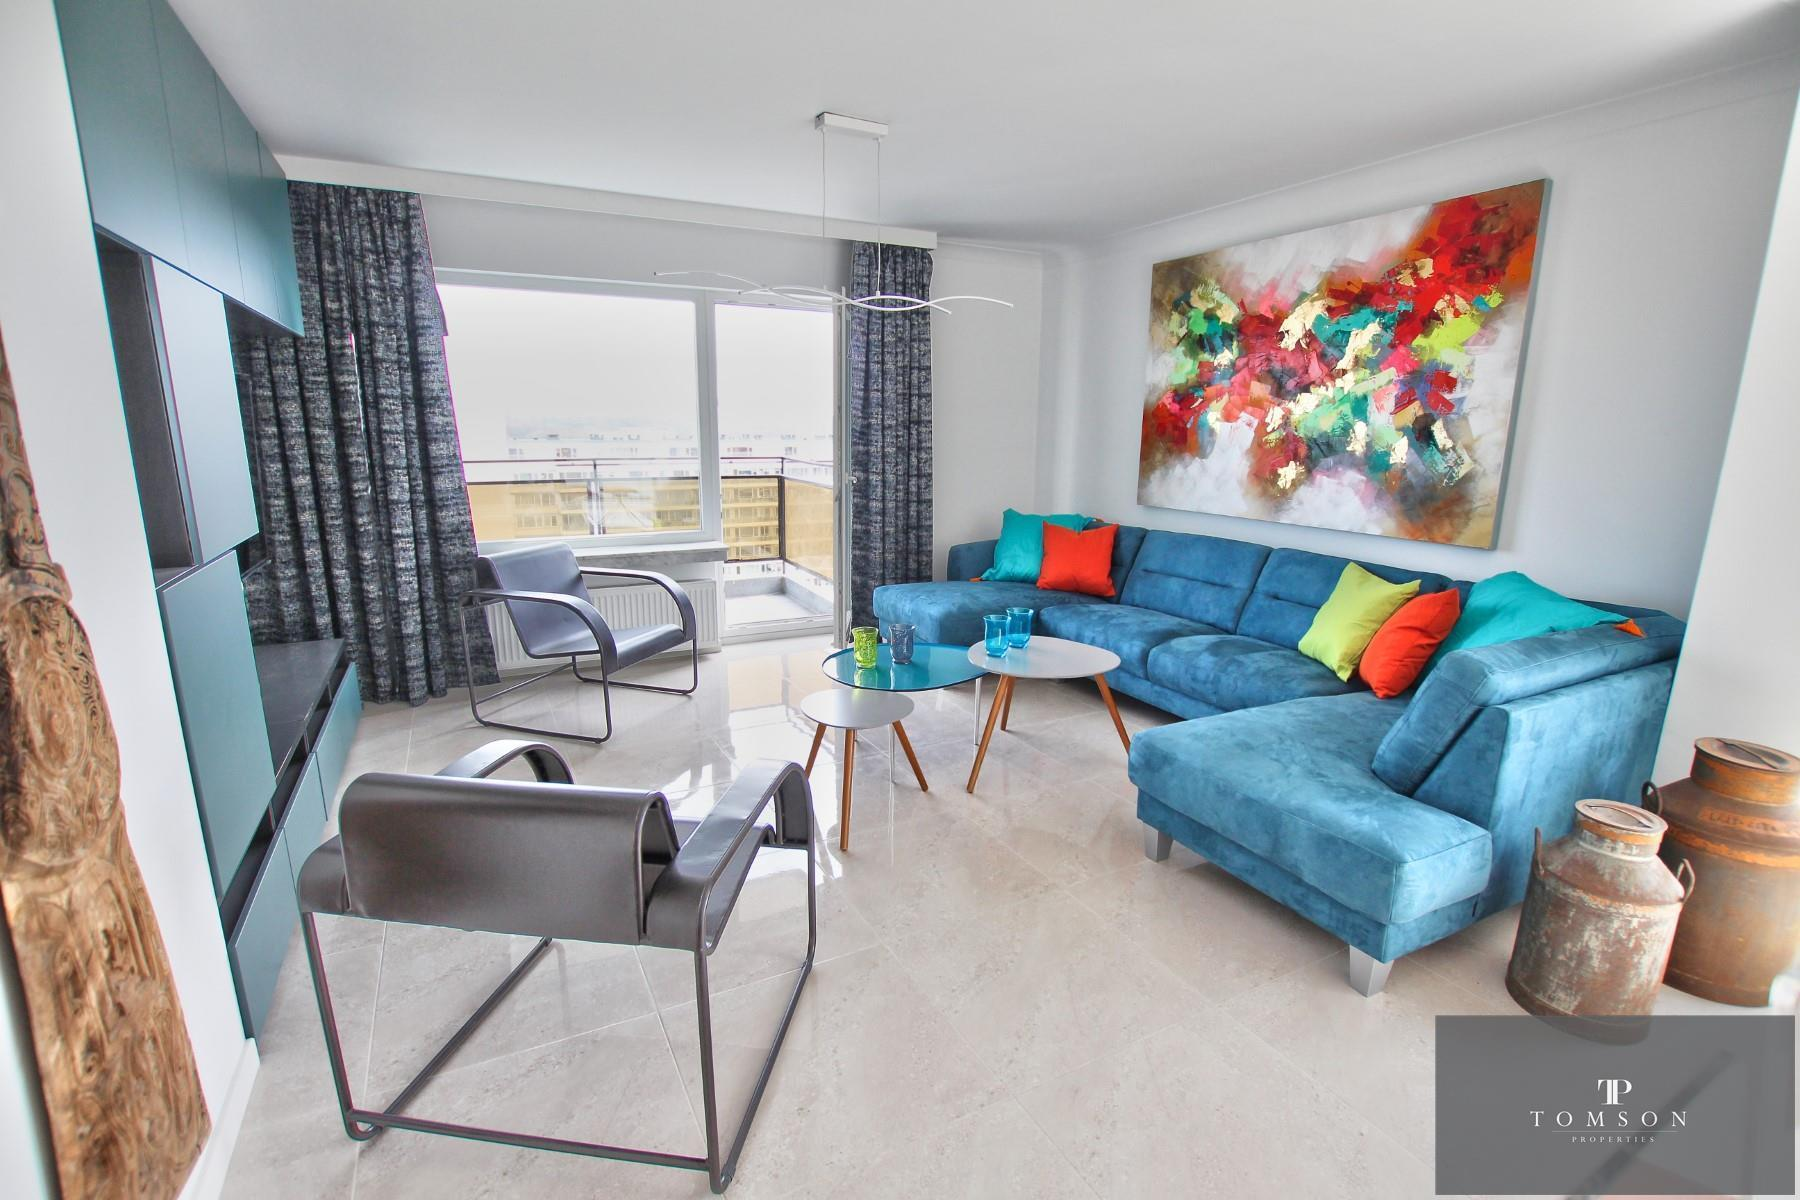 Appartement exceptionnel - Evere - #4530514-4